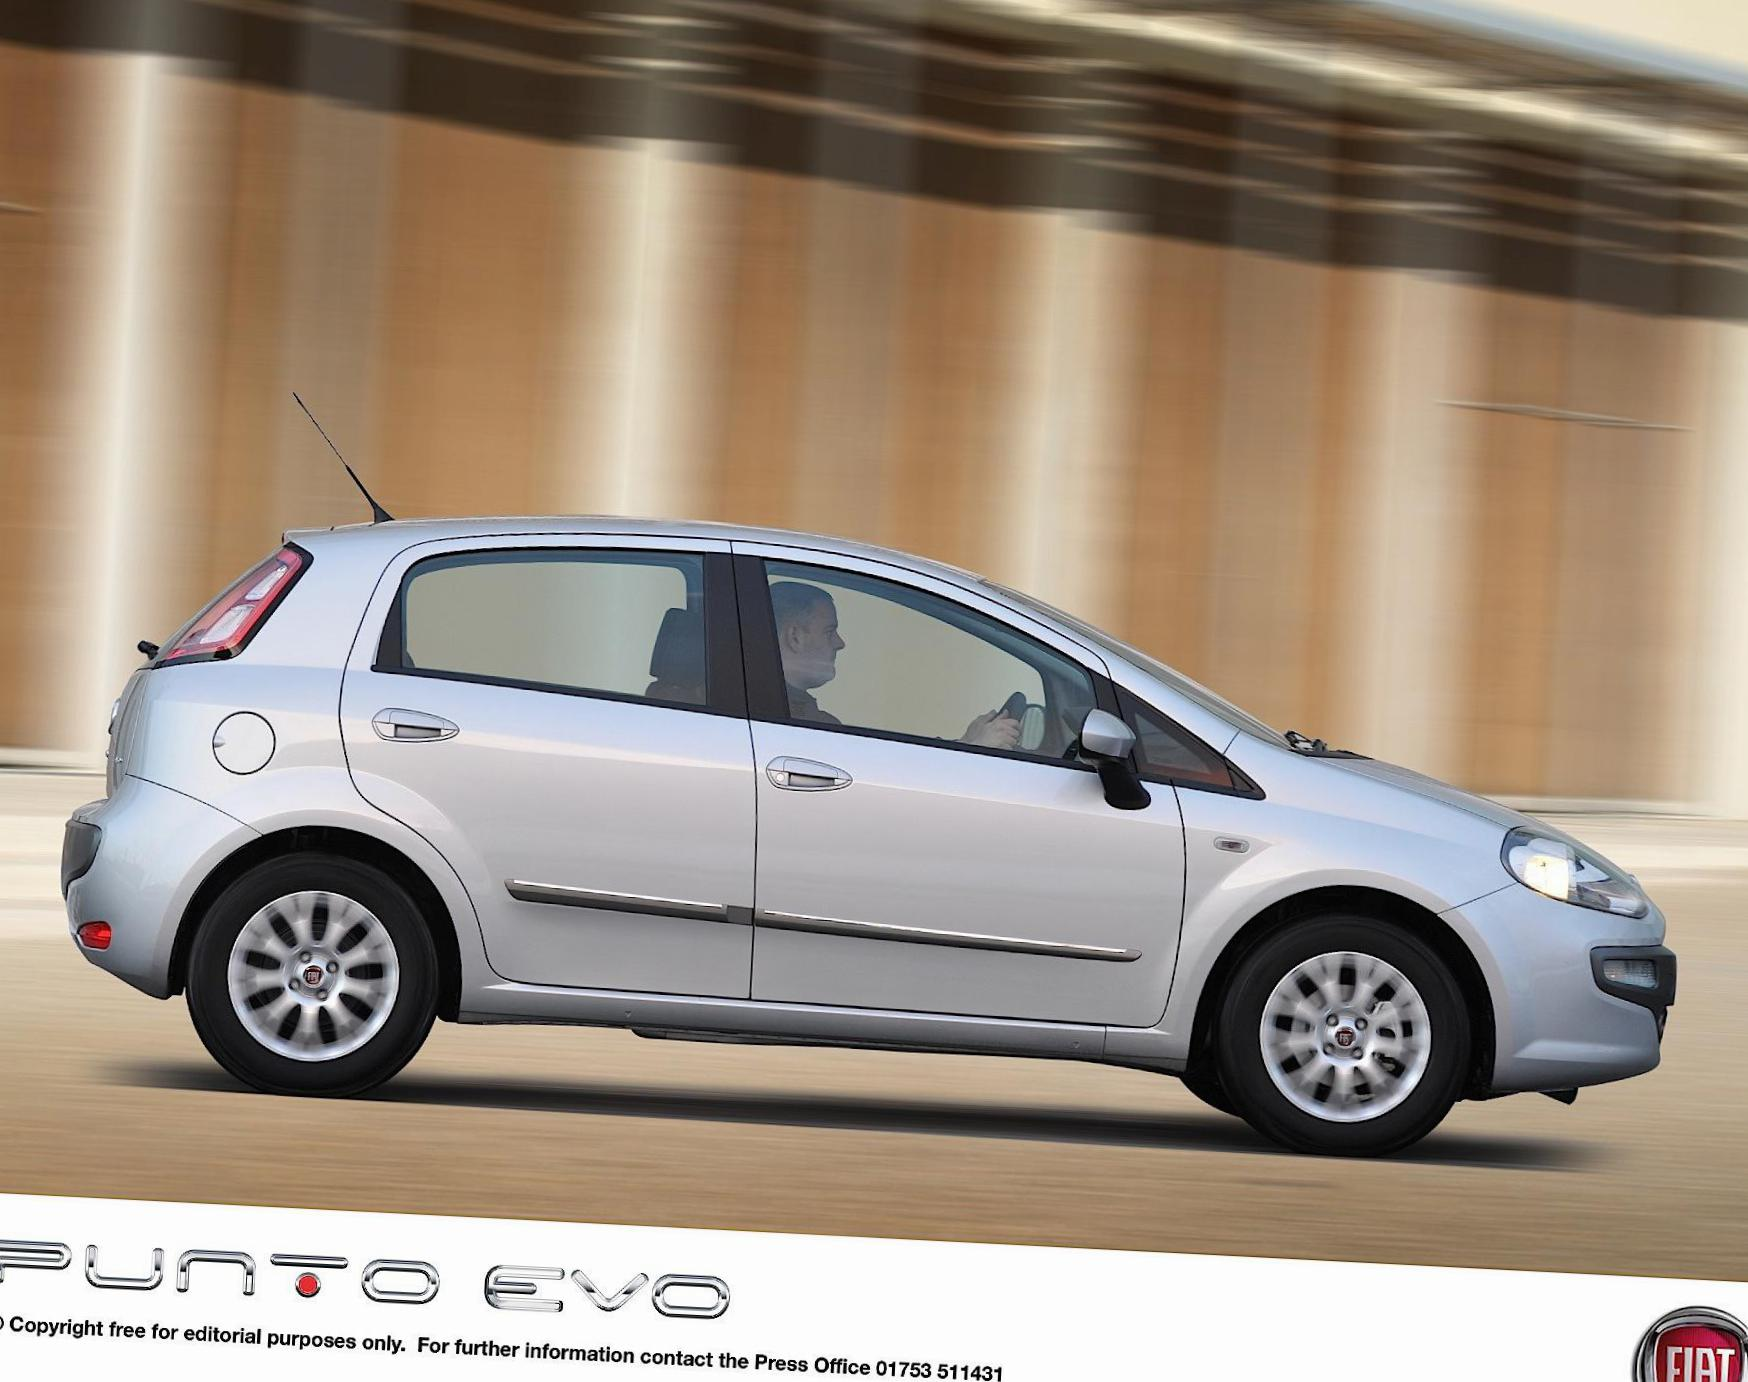 Punto Evo 5 doors Fiat for sale 2015